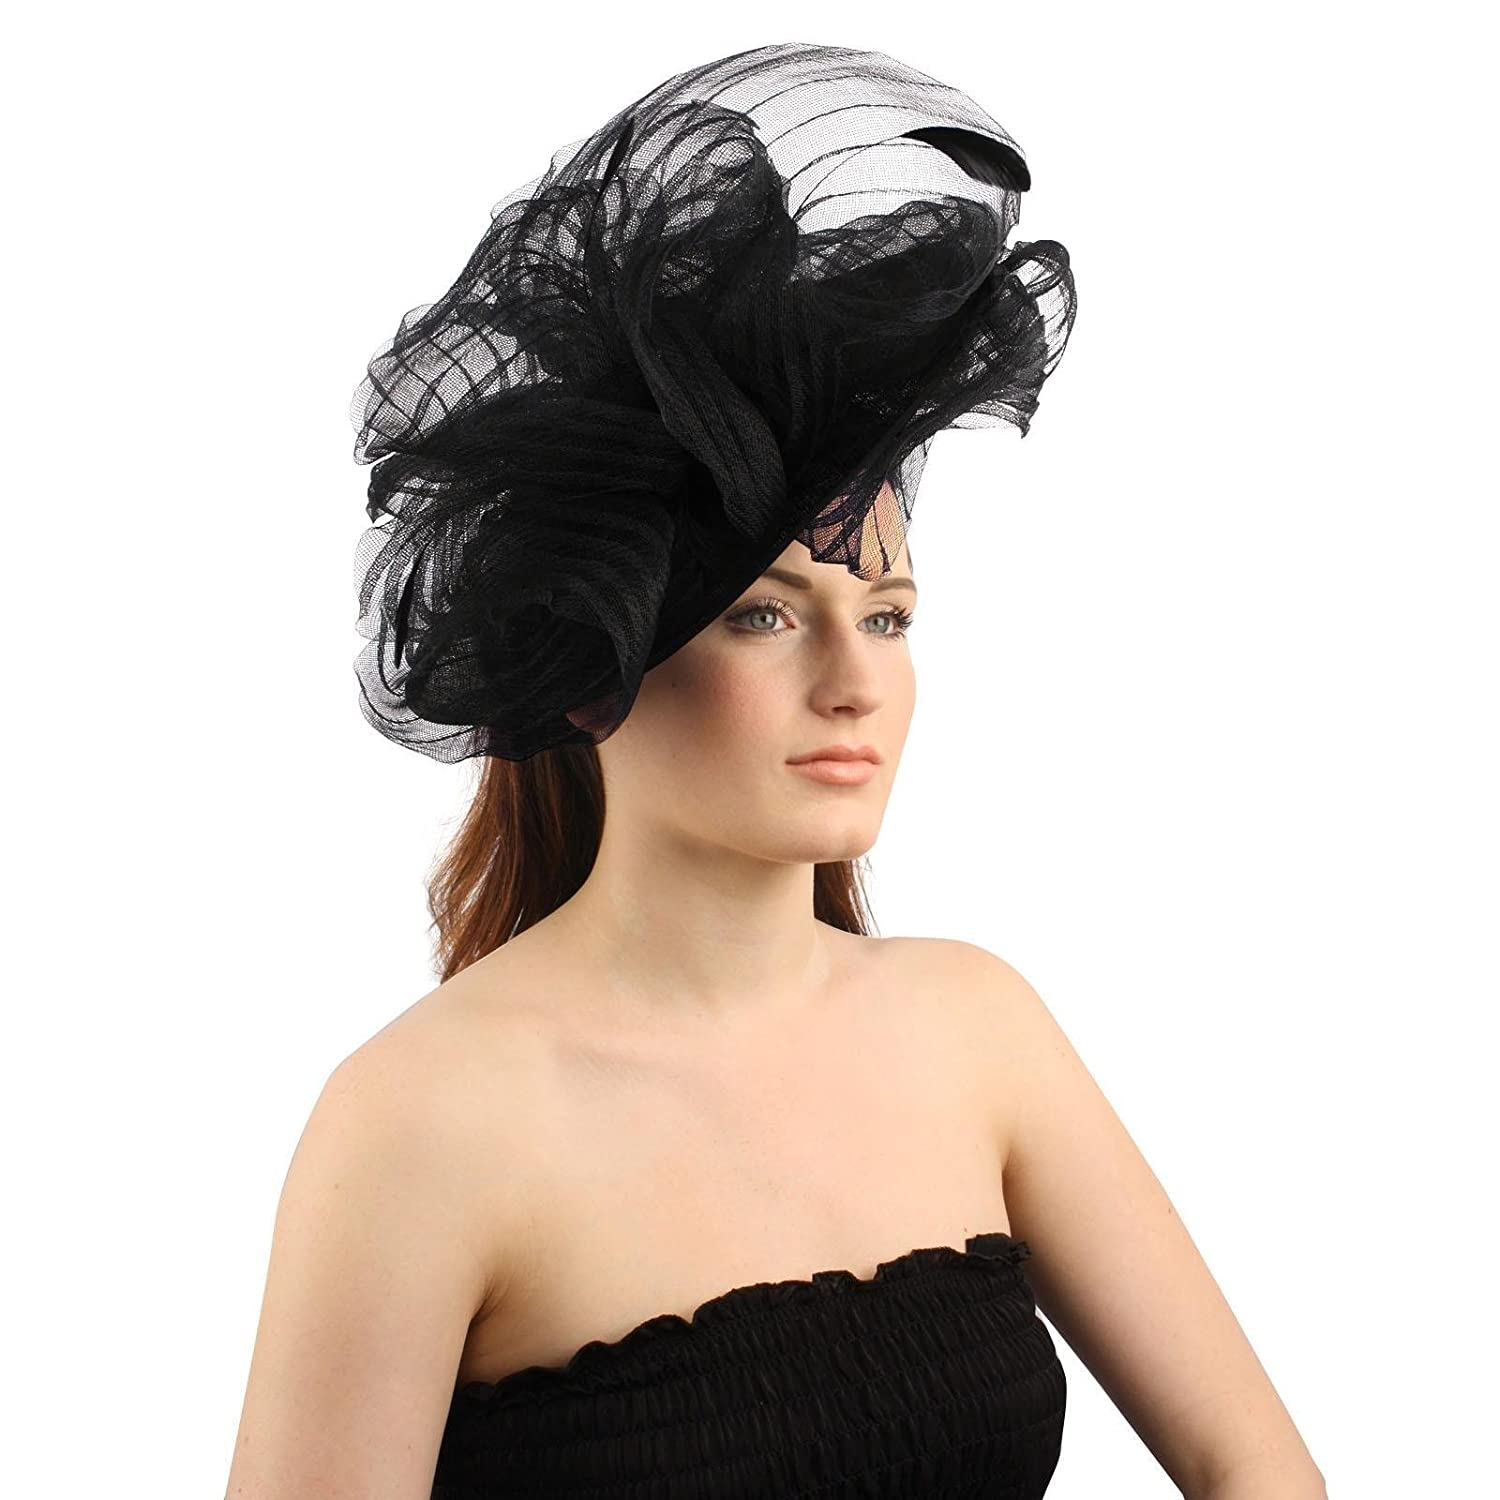 SK Hat shop Fancy Derby Disc Swirl Tulle Feather Headband Fascinator  millinery Church Black at Amazon Women s Clothing store  b8bb29451b0